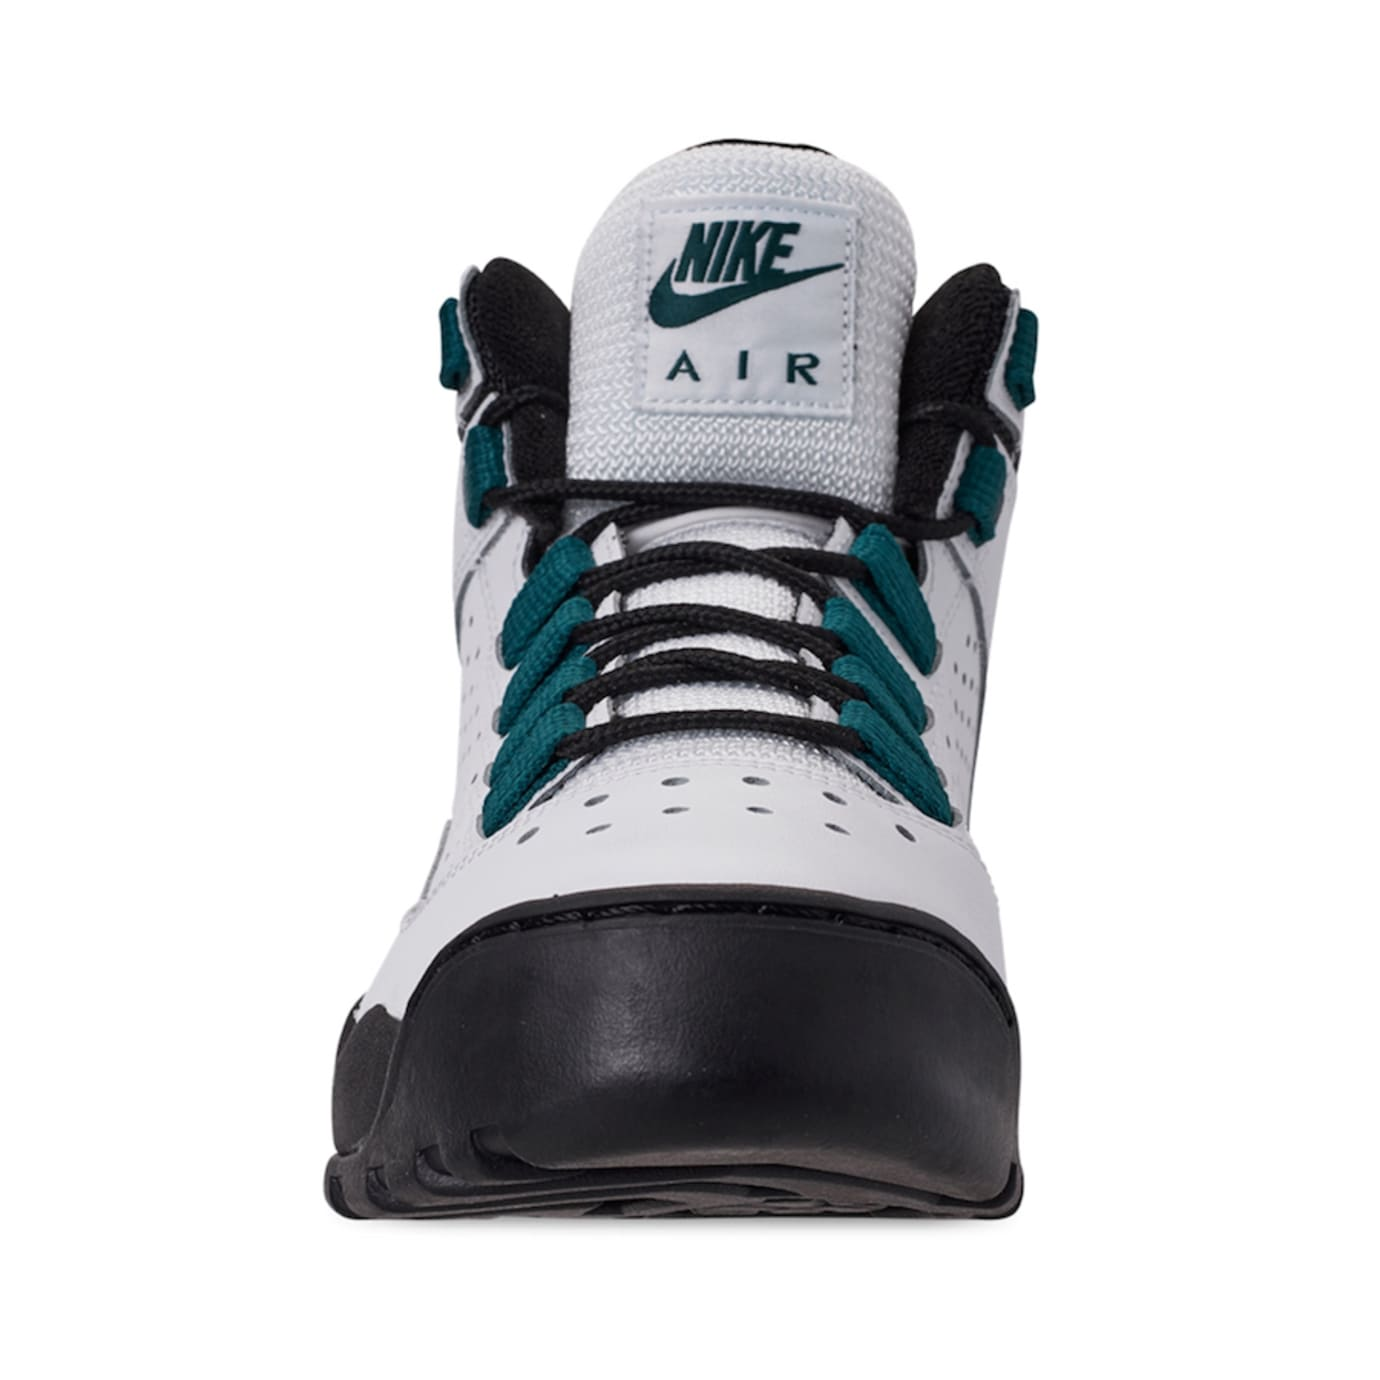 best sneakers 9b6fd 060f5 Image via Finish Line Nike Air Darwin  White Teal Black  AJ9710-100 (Front)